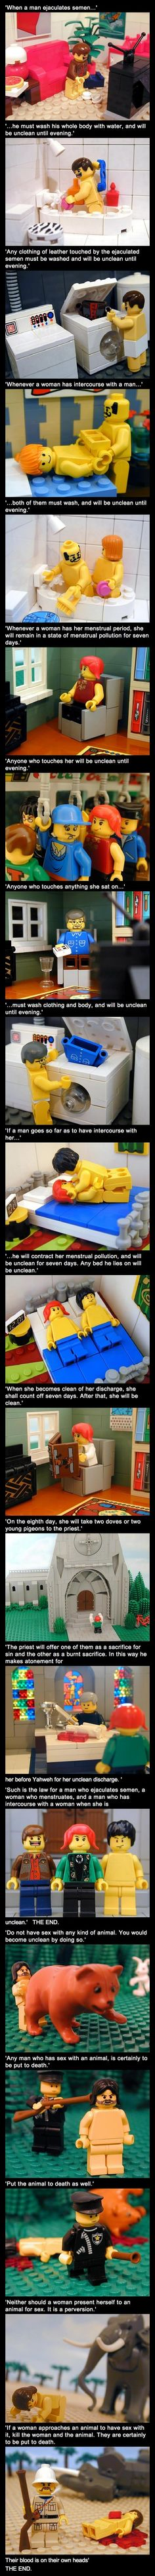 Laws from Leviticus, delivered through 'artfully' posed LEGOs.